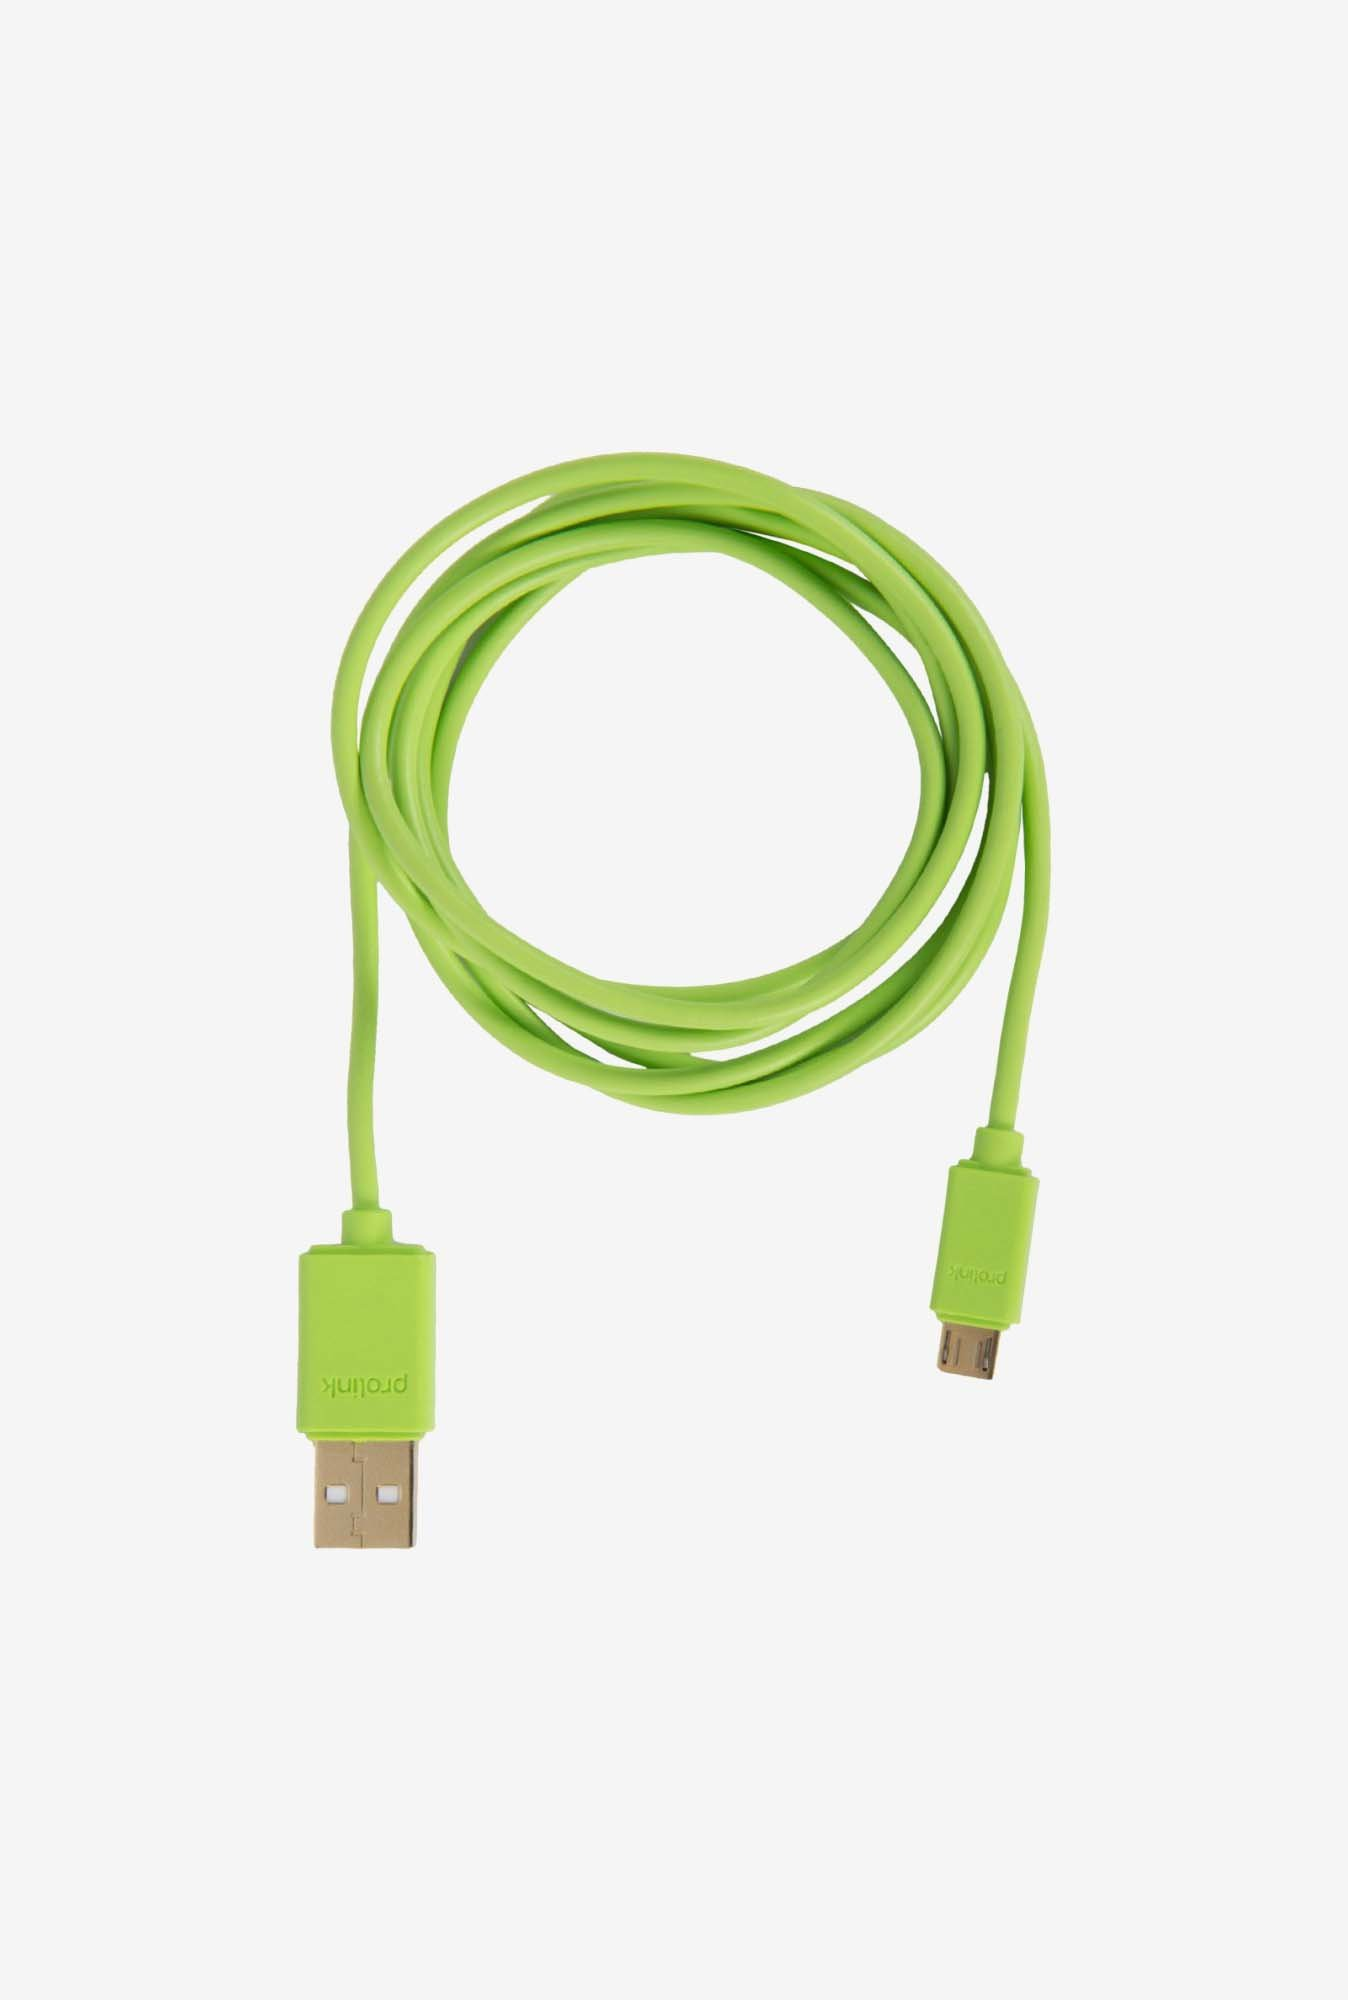 ULTRAPROLINK UL487GRN-0150 USB Cable Green